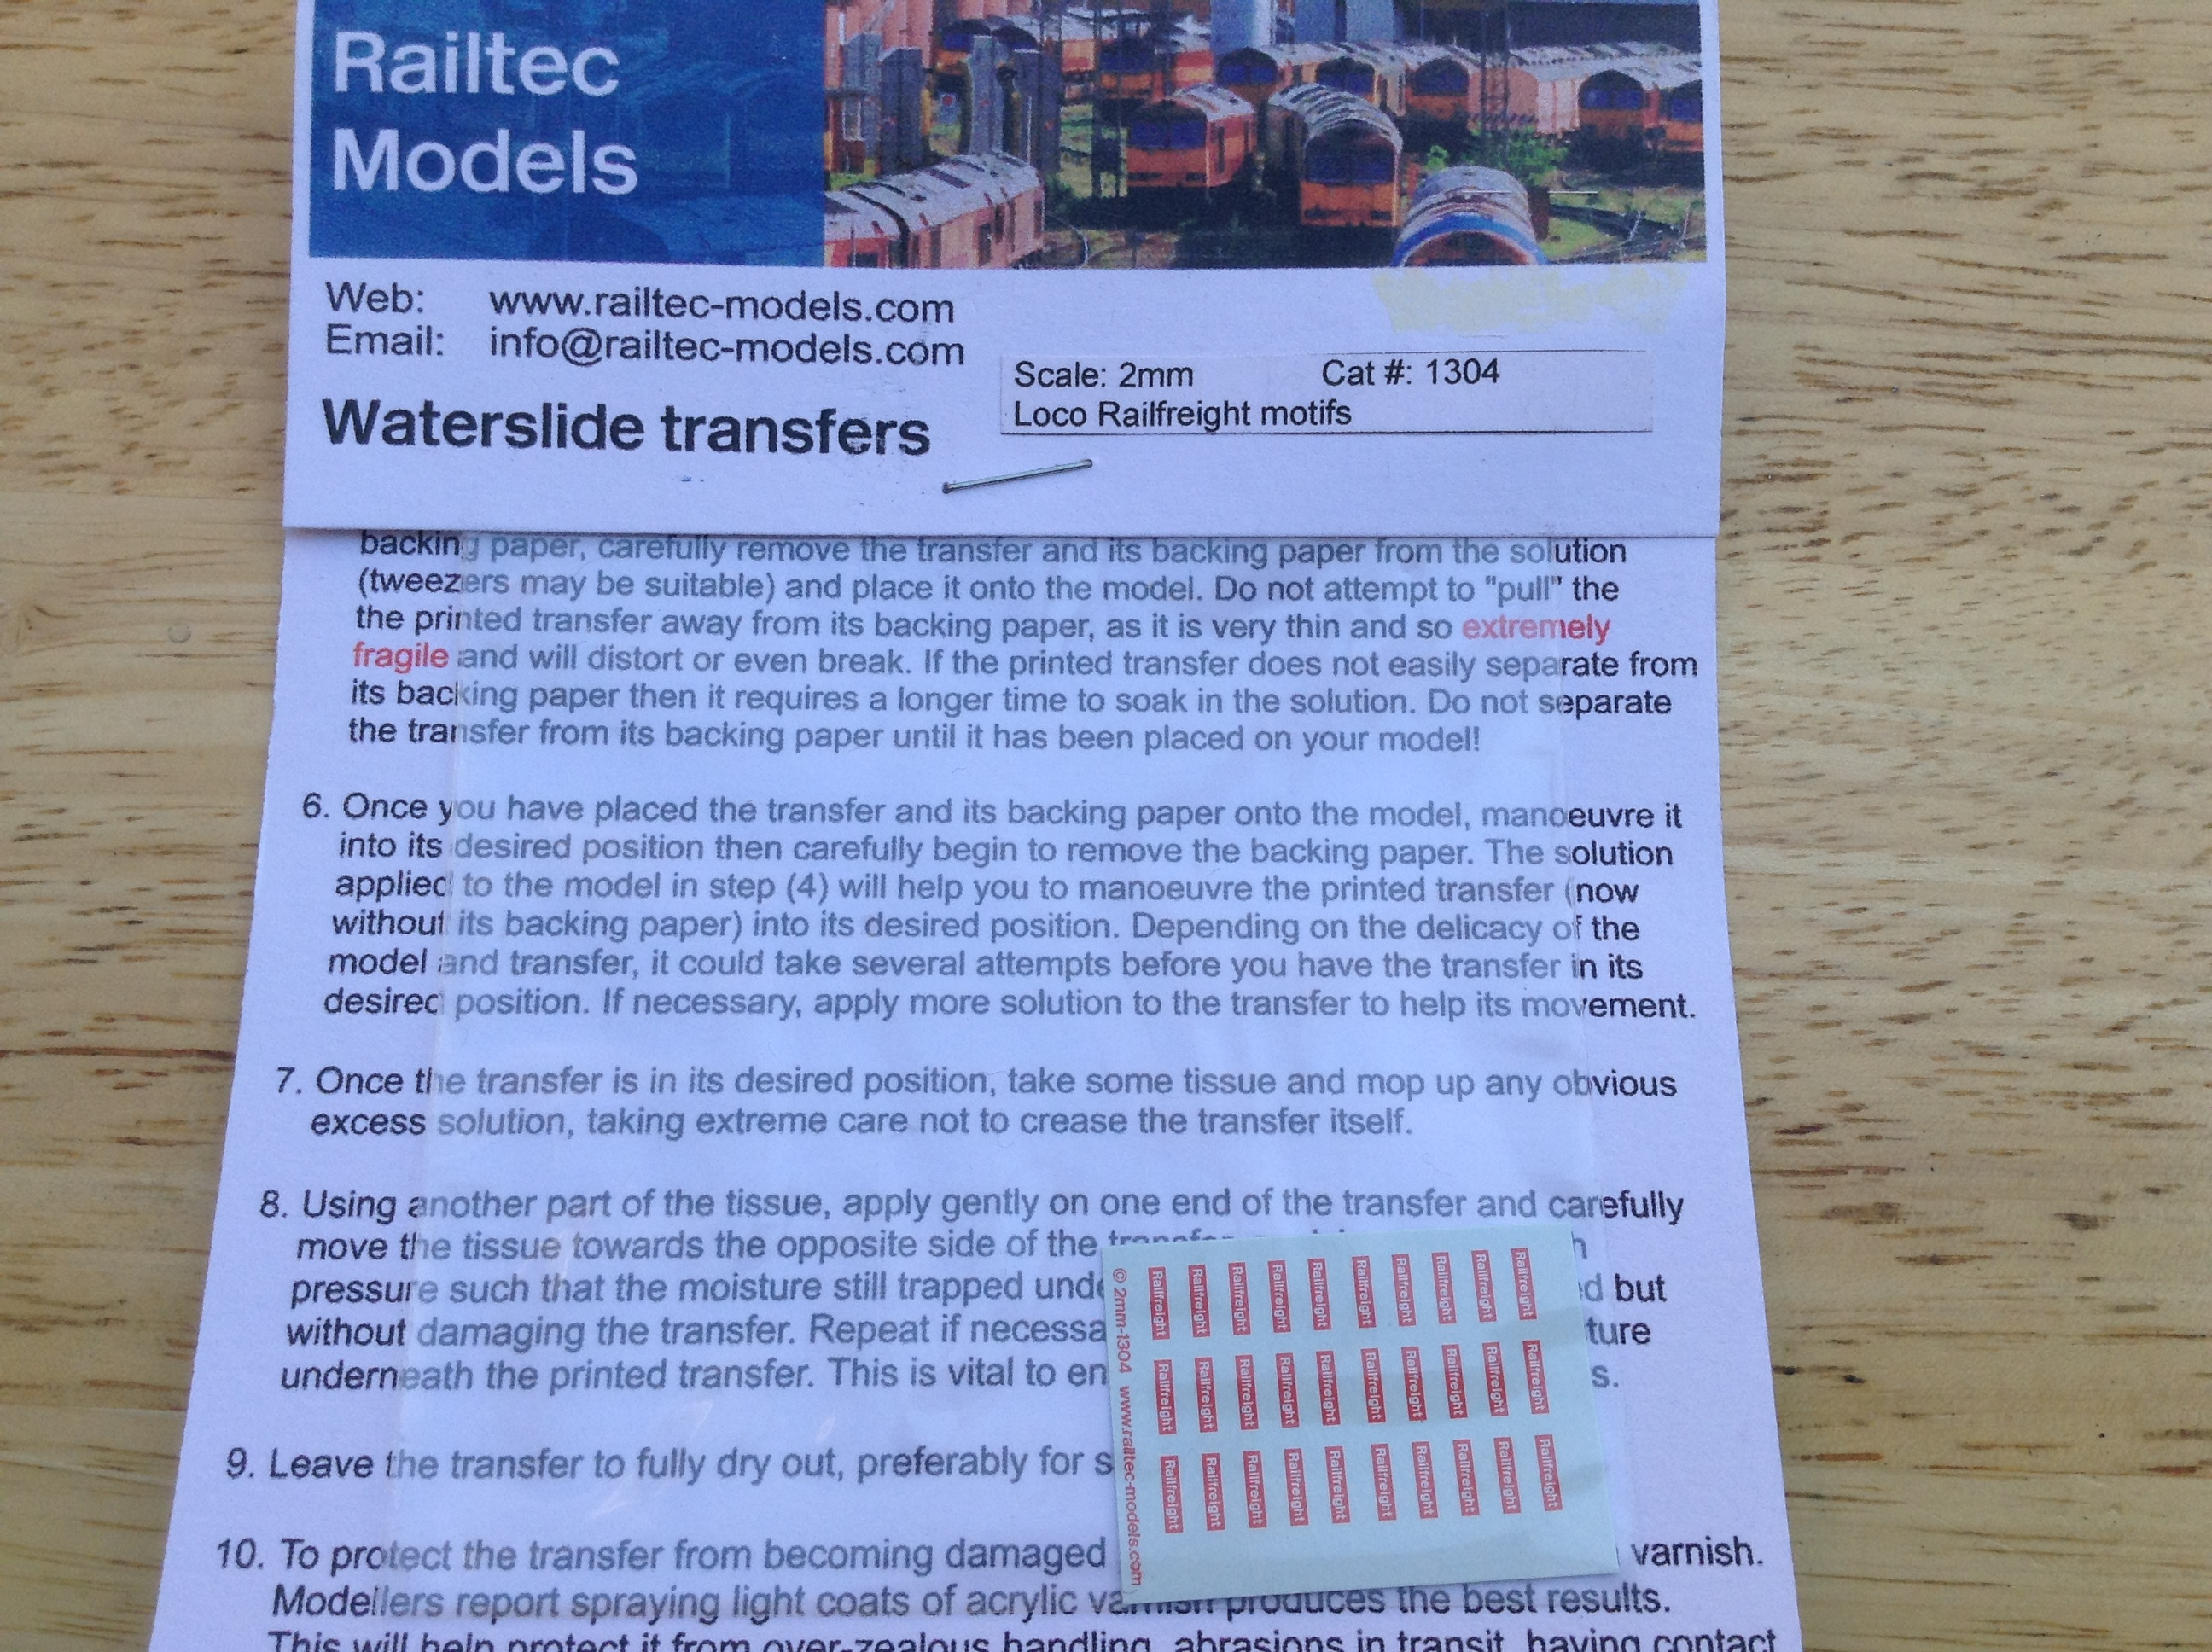 Railtec 1304 Loco Railfreight Motifs